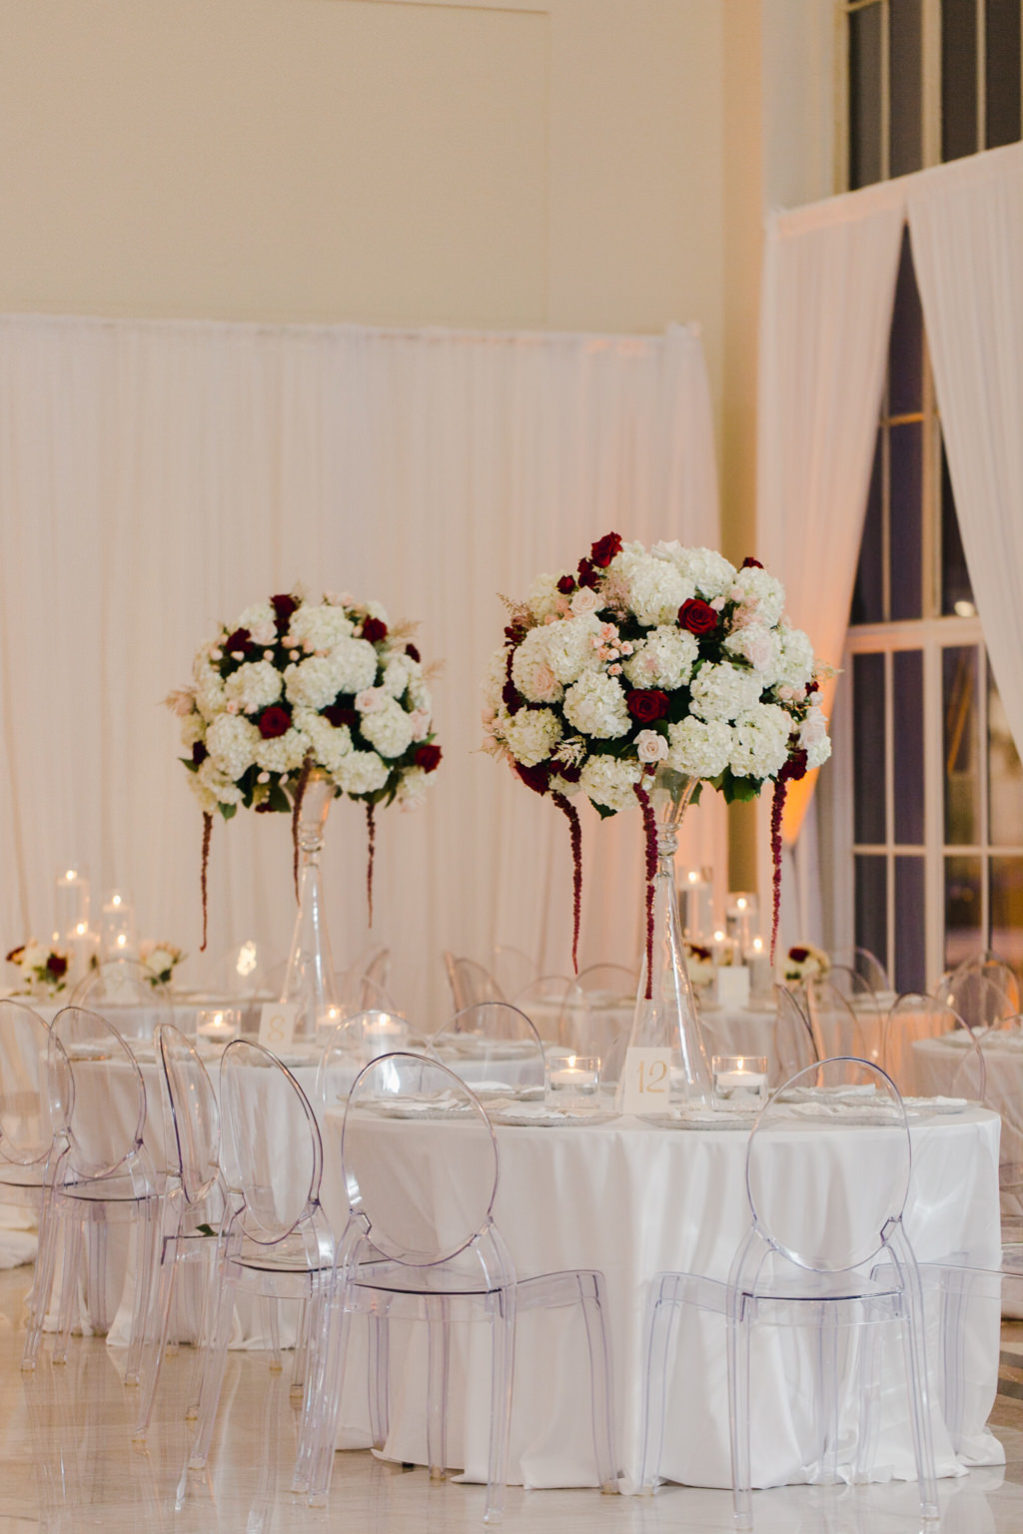 Elegant Wedding Reception Decor, Round Tables with White Tablecloths, Acrylic Ghost Chairs, Tall Glass Vase with White and Blush Pink Hydrangeas with Dark Red Hanging Amaranthus | Tampa Bay Wedding Venue The Vault | Wedding Florist and Rentals Gabro Event Services